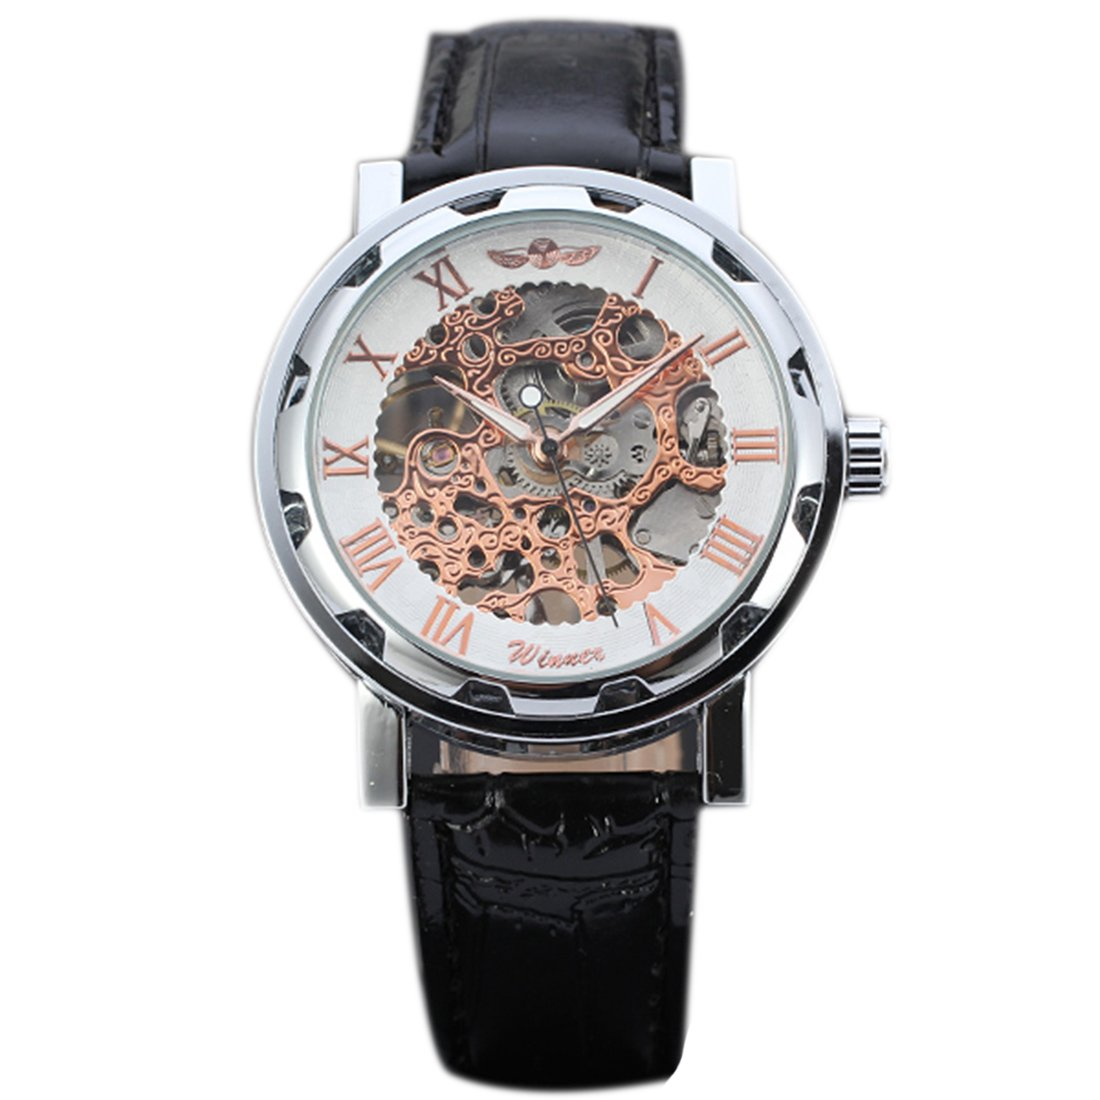 joyliveCY Pu Leather Band Automatic Mechanical Skeleton Watch For Men Fashion Gear Wrist Watch Reloj Army Hombre Horloge White&Gold